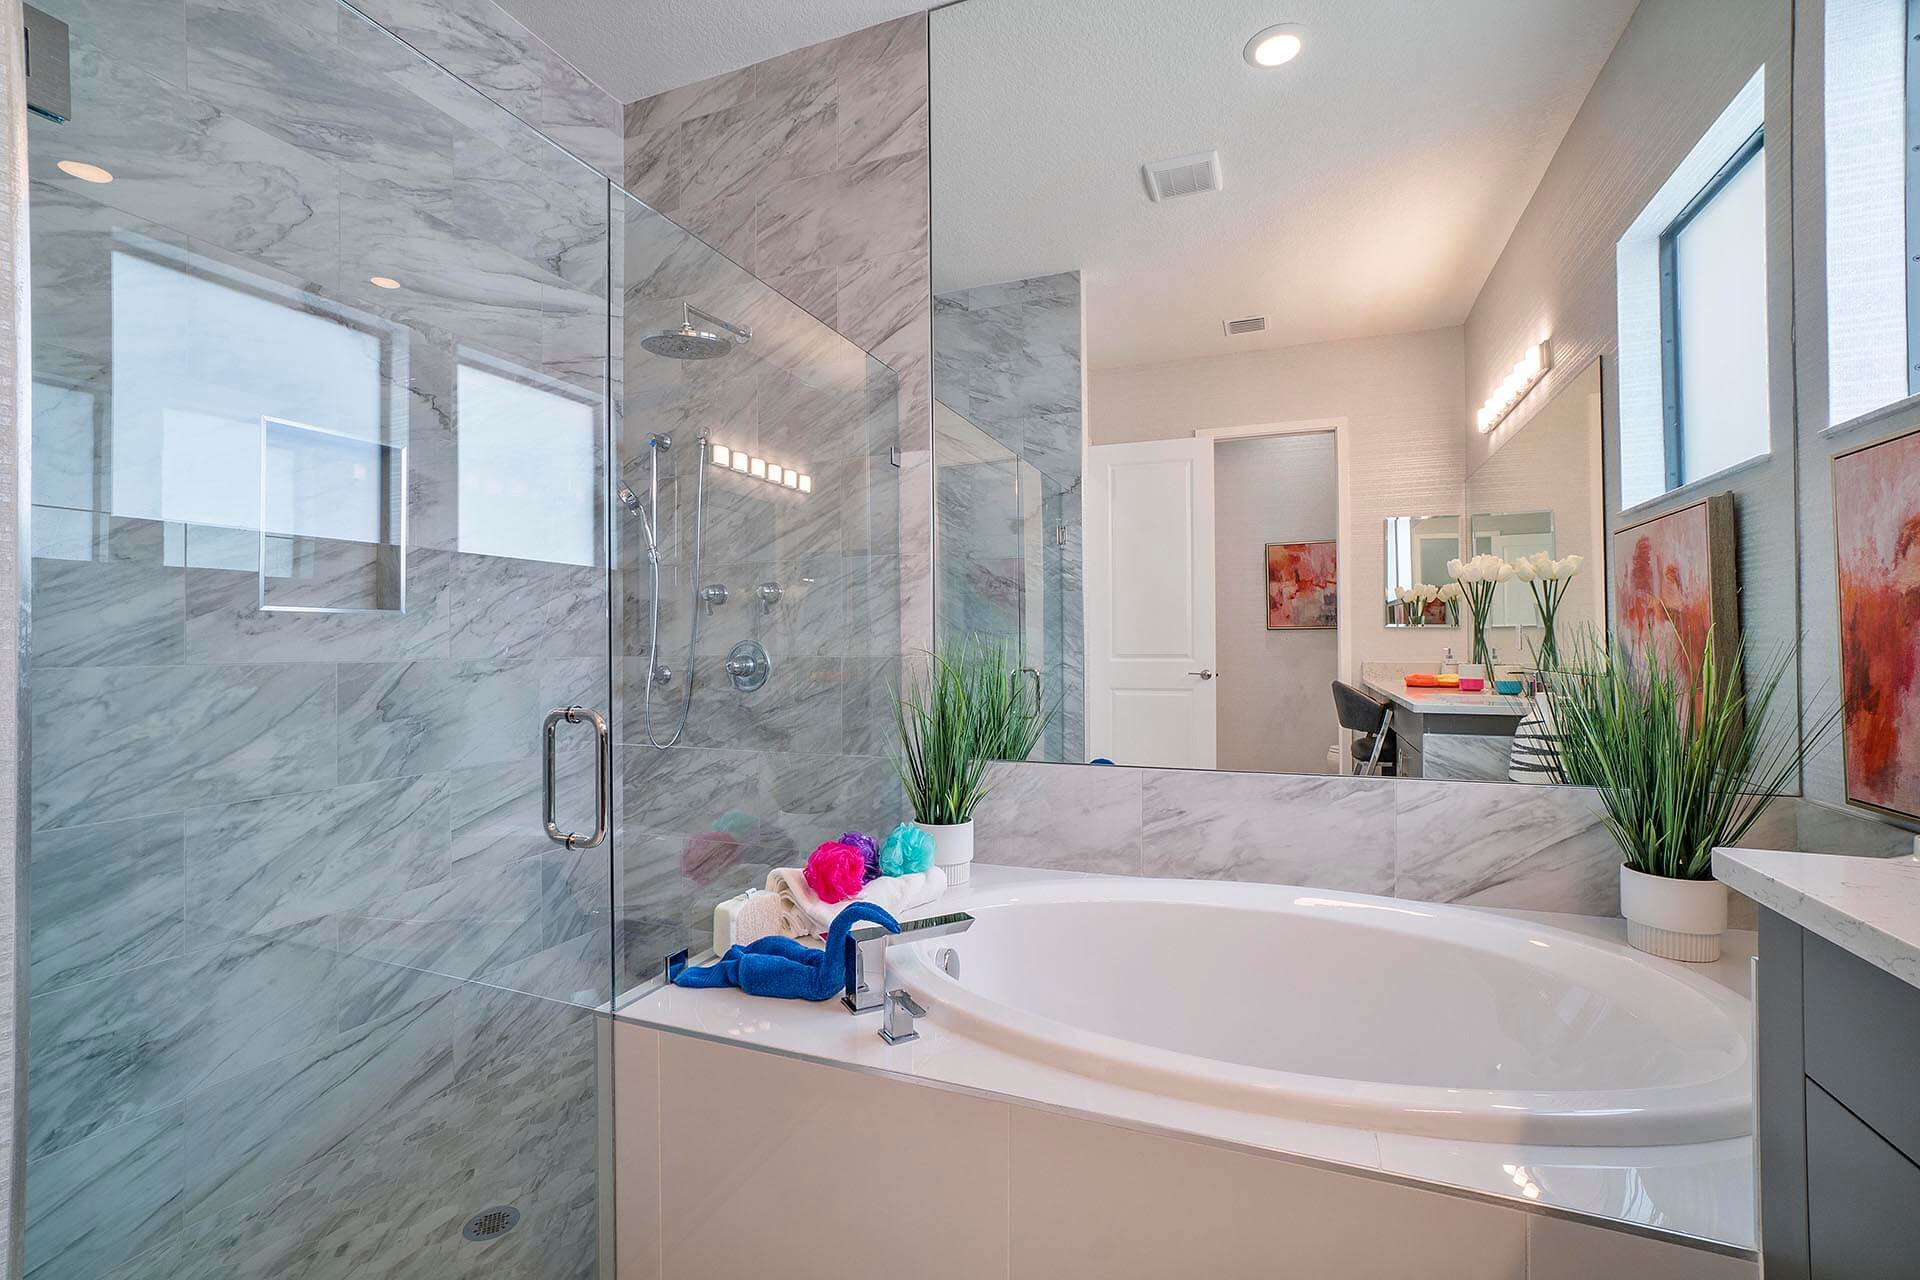 Bathroom featured in the Rio Grand By Akel Homes in Palm Beach County, FL